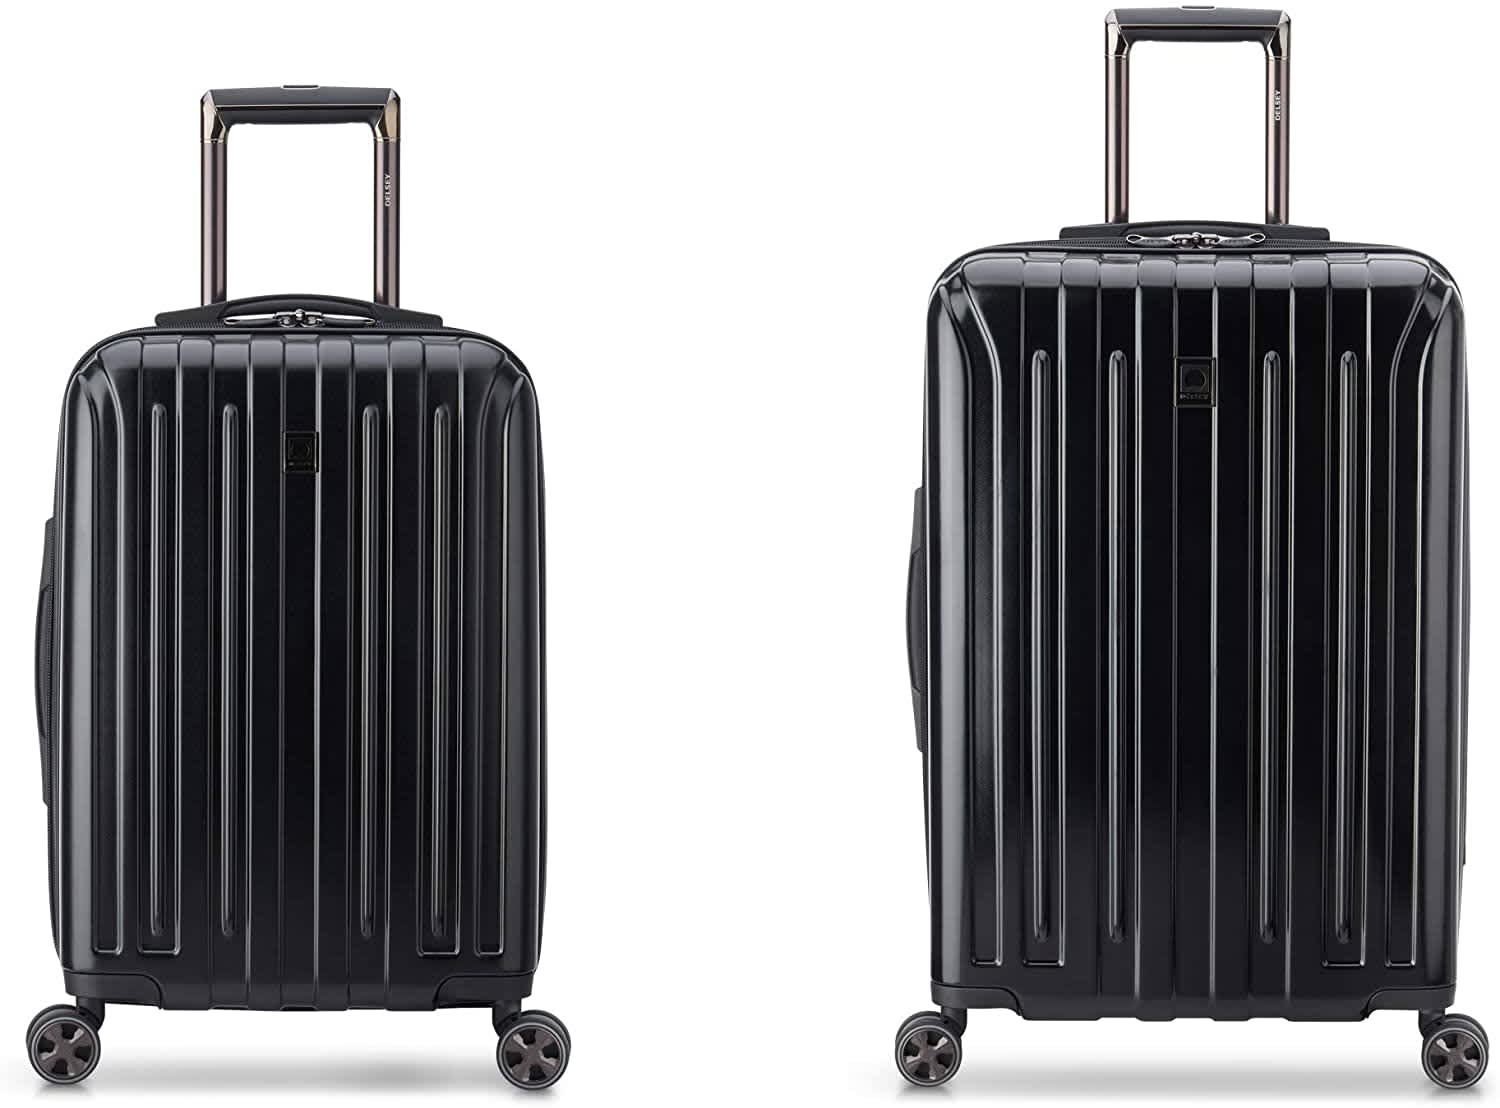 Delsey Paris Titanium DLX Hardside Spinner Luggage 2-Piece Set